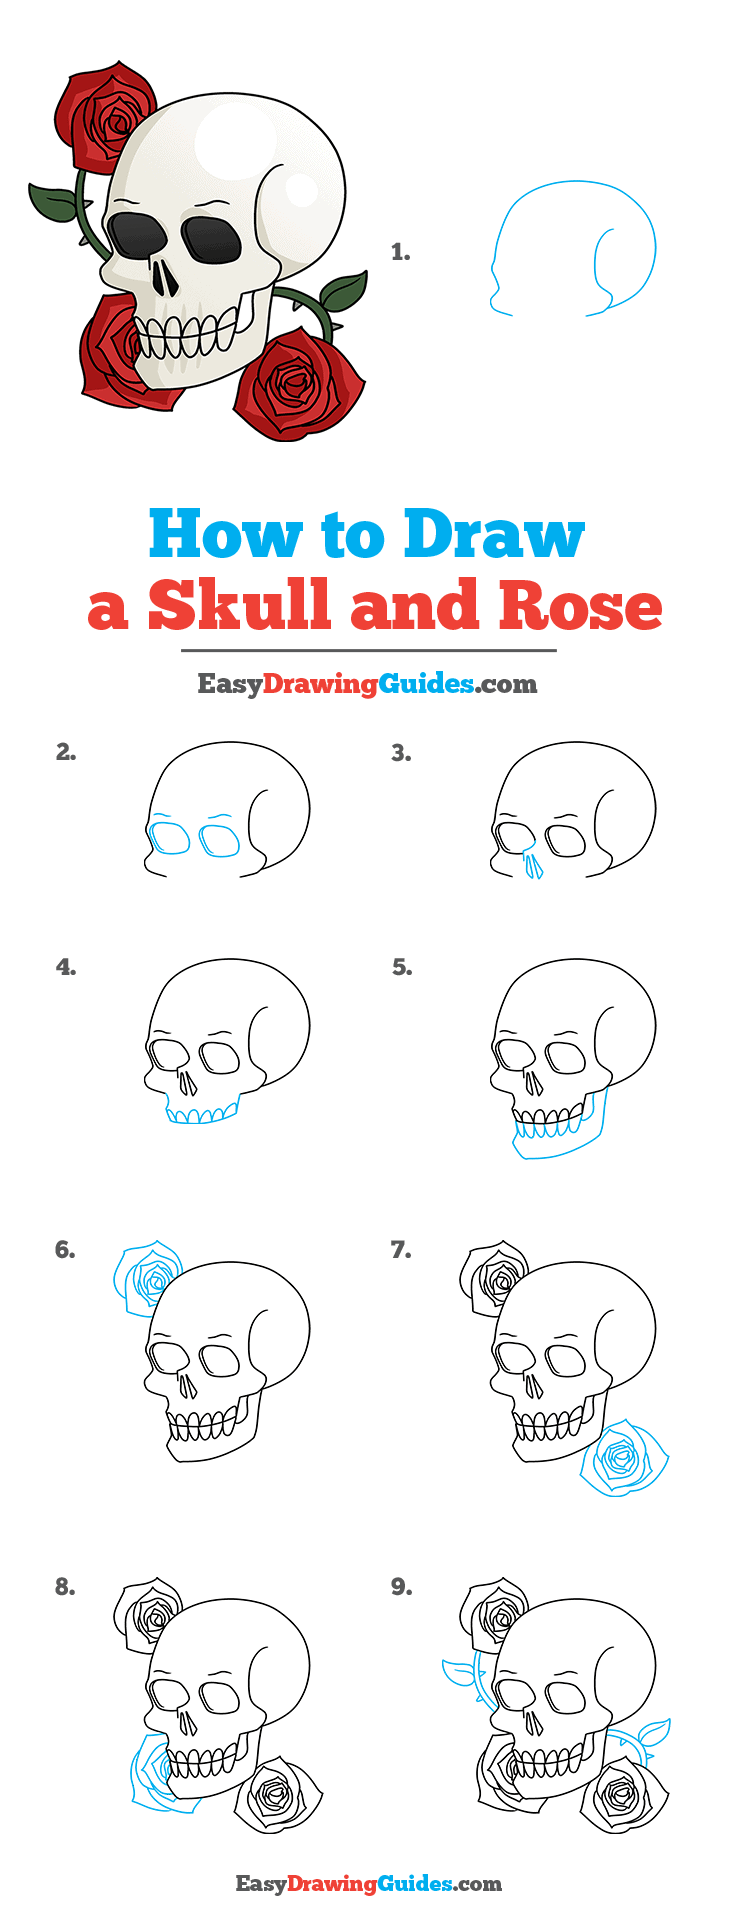 How to Draw a Skull and Rose Step by Step Tutorial Image